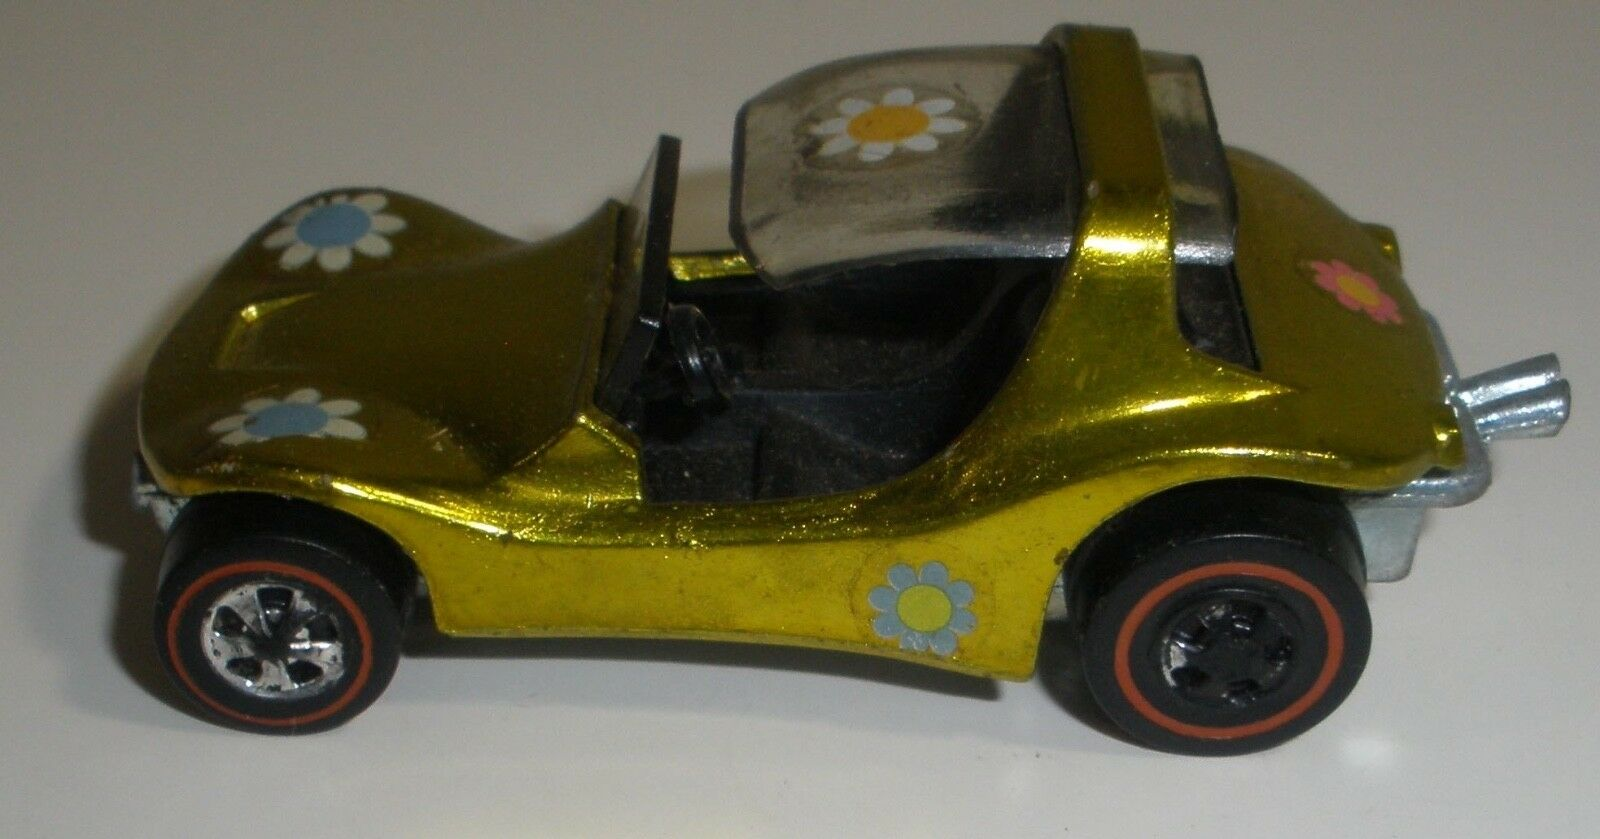 Hot Wheels redline Sand crab yellow nice condition